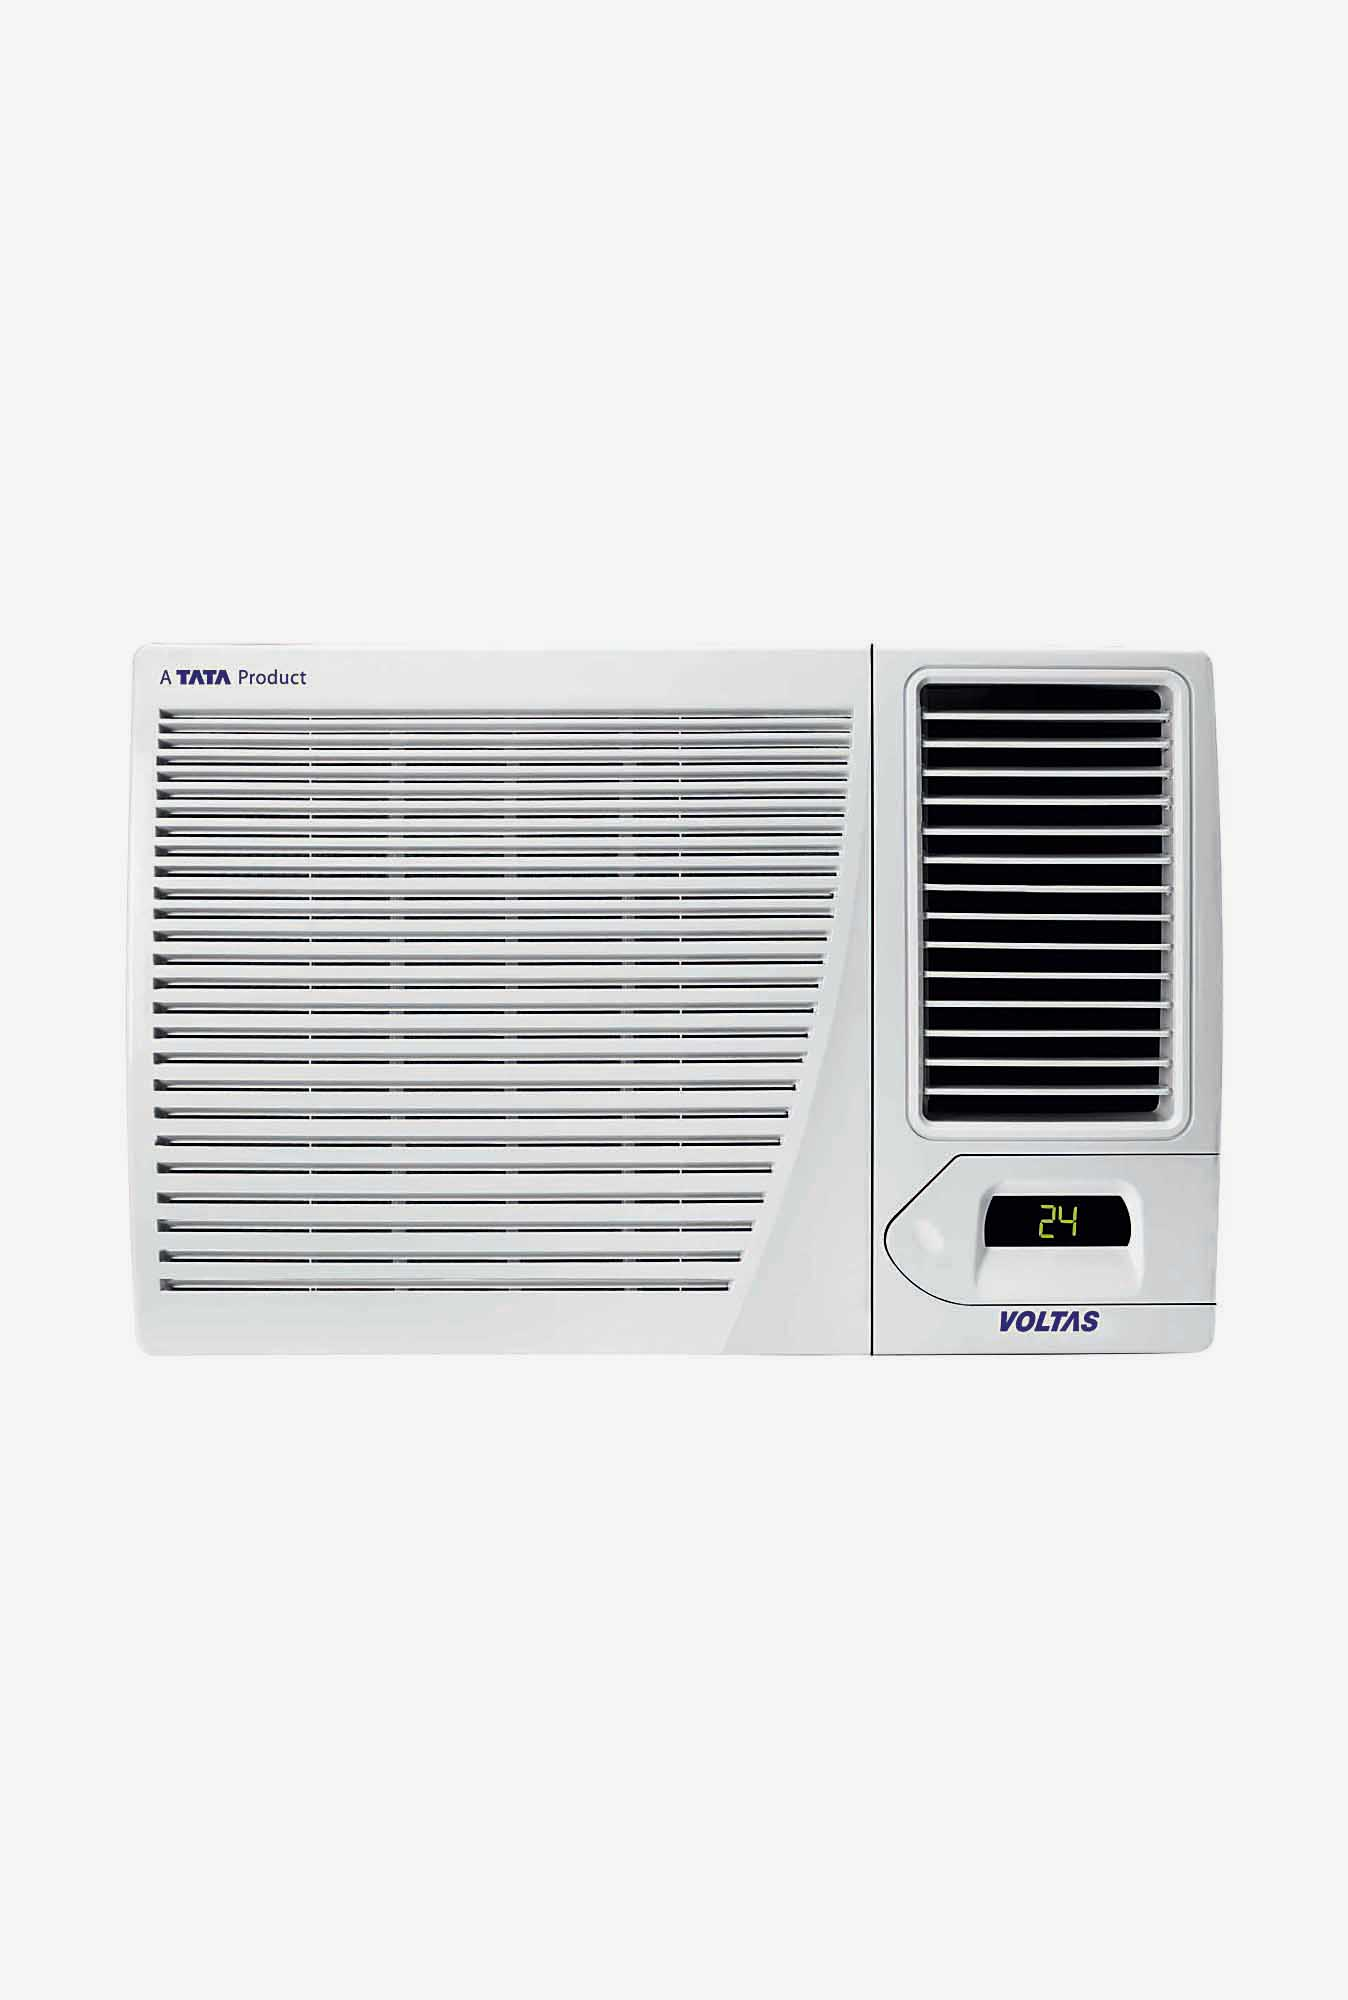 Voltas 1.5 Ton 3 Star (2017) Classic 183CYa Window AC Copper White